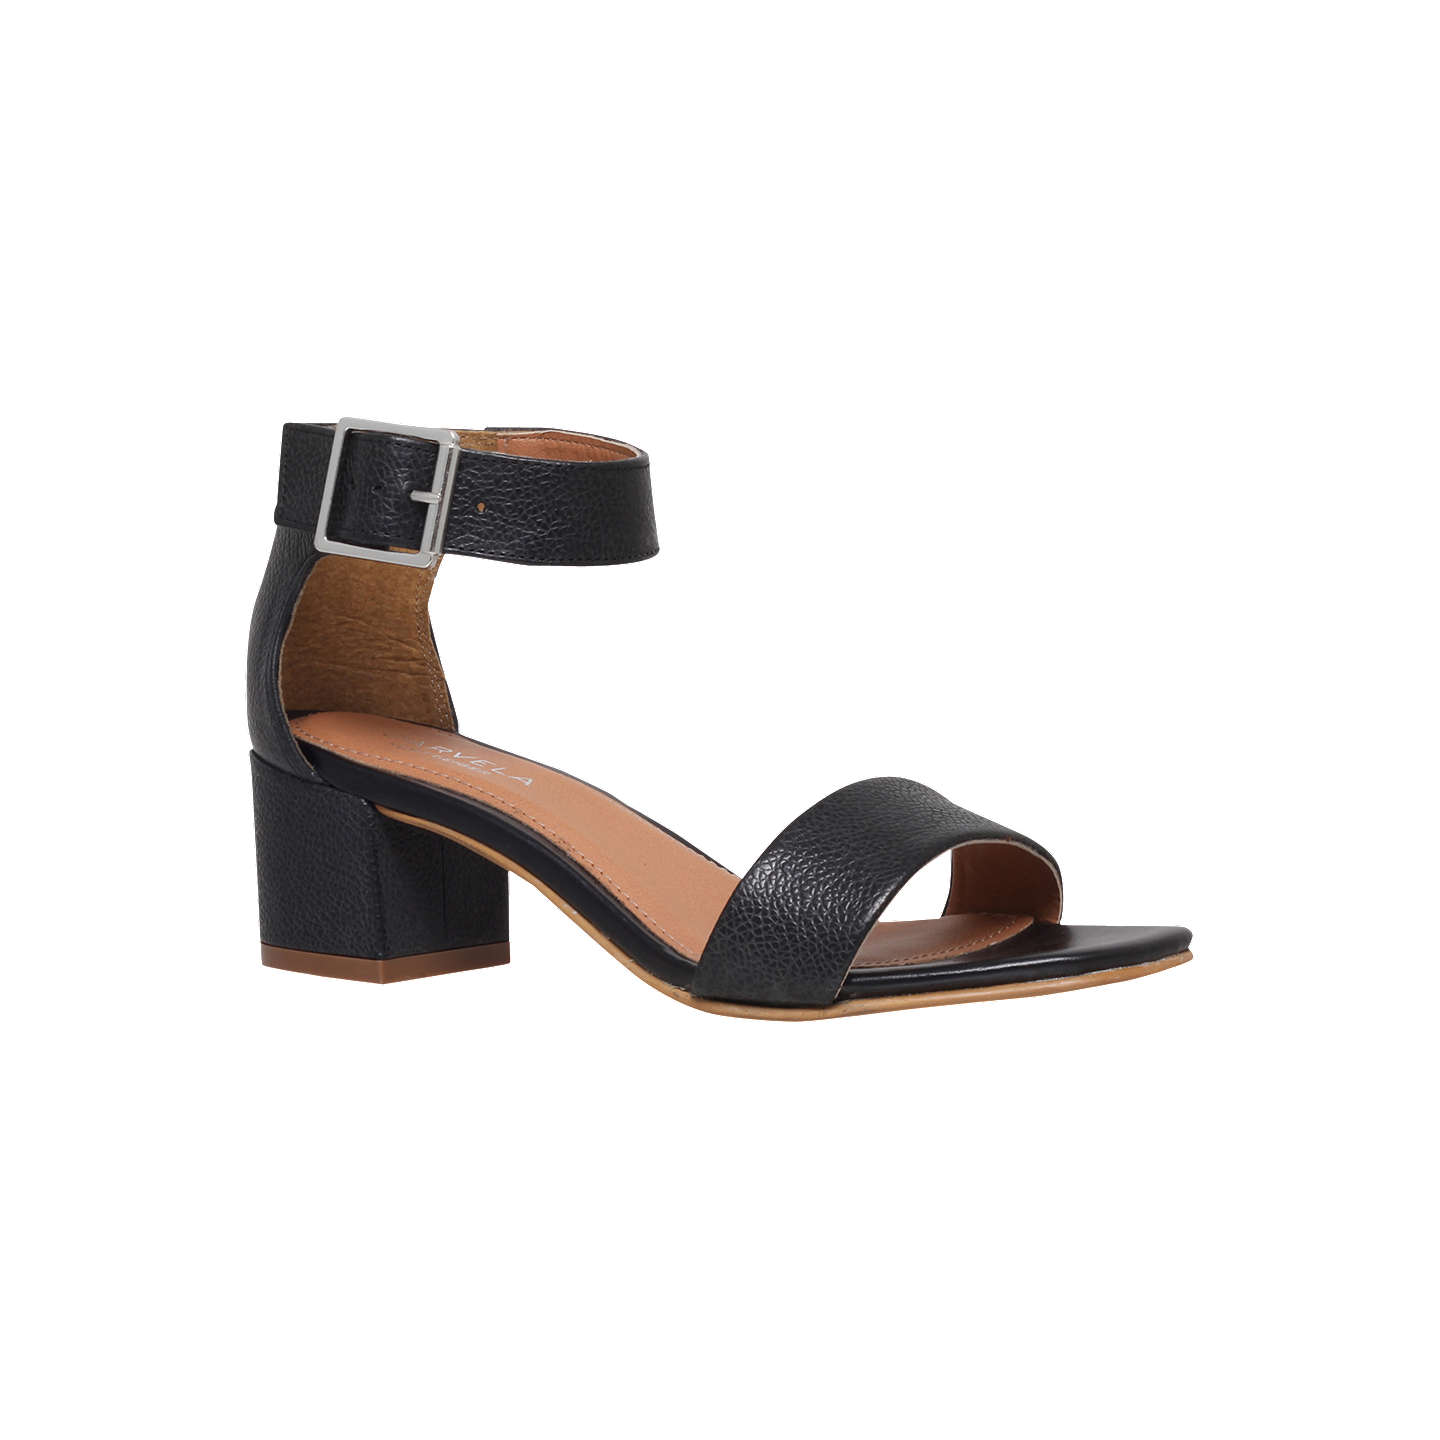 BuyCarvela Shadow Block Heeled Sandals, Black, 4 Online at johnlewis.com